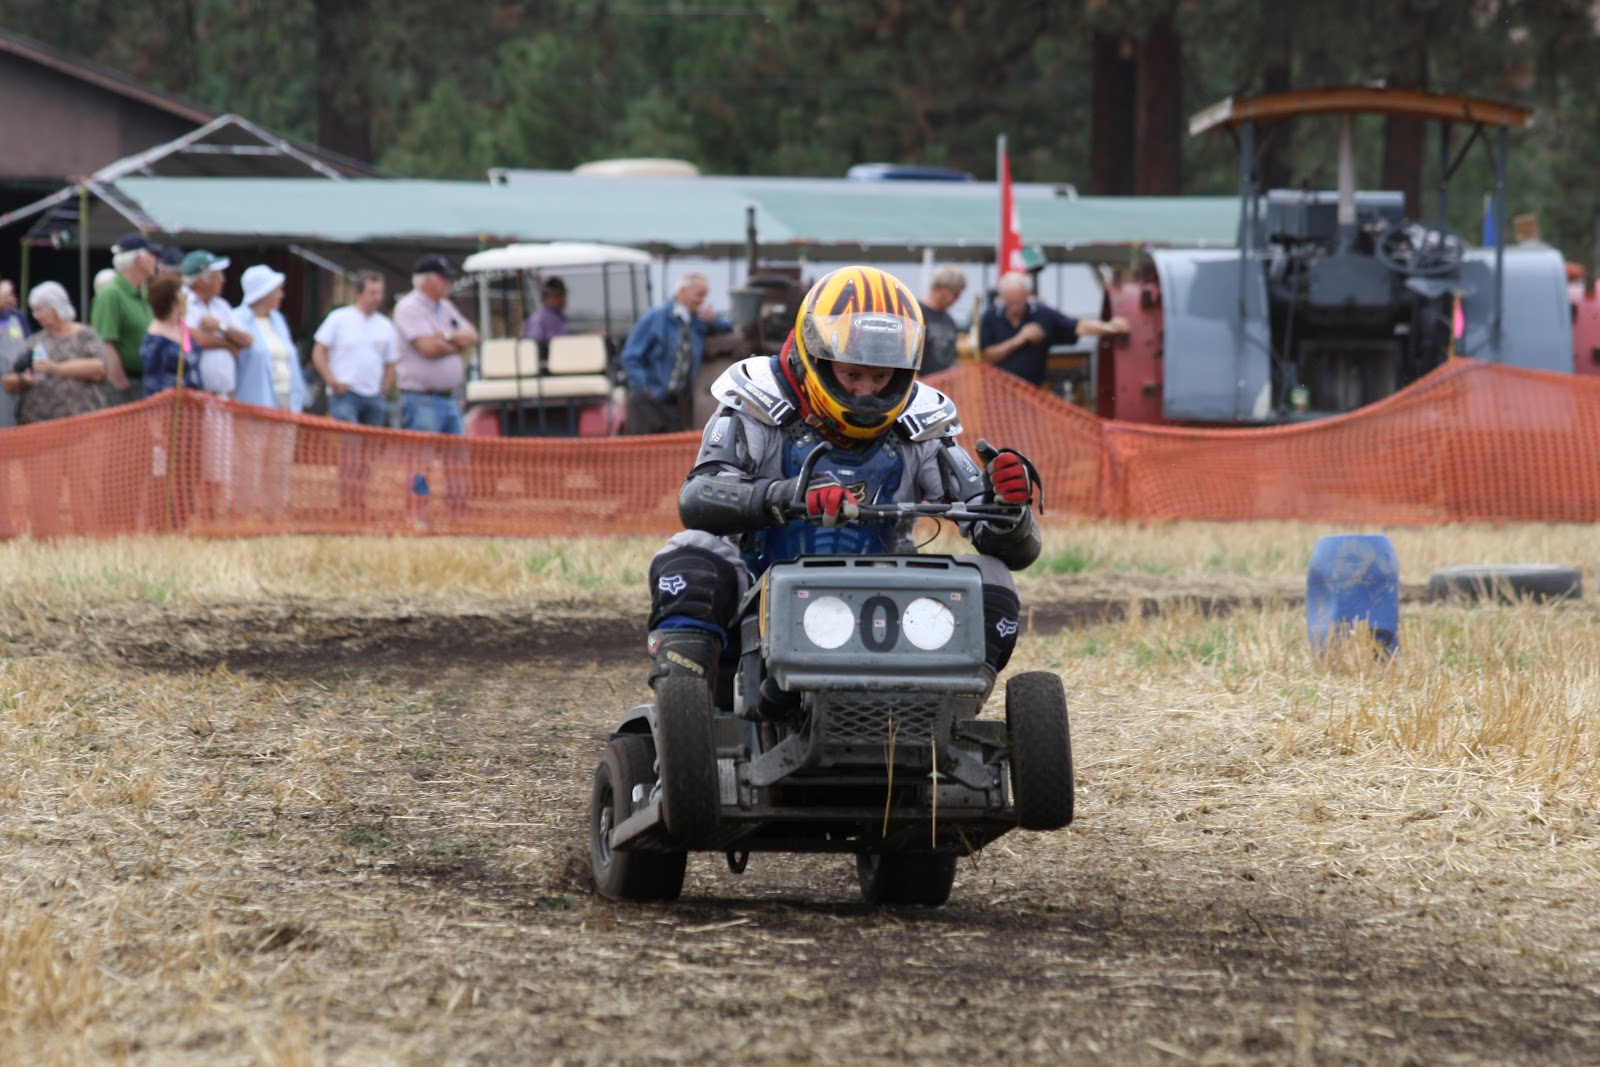 Lawn Mower Racing Vintage Steam And Tractor Pull